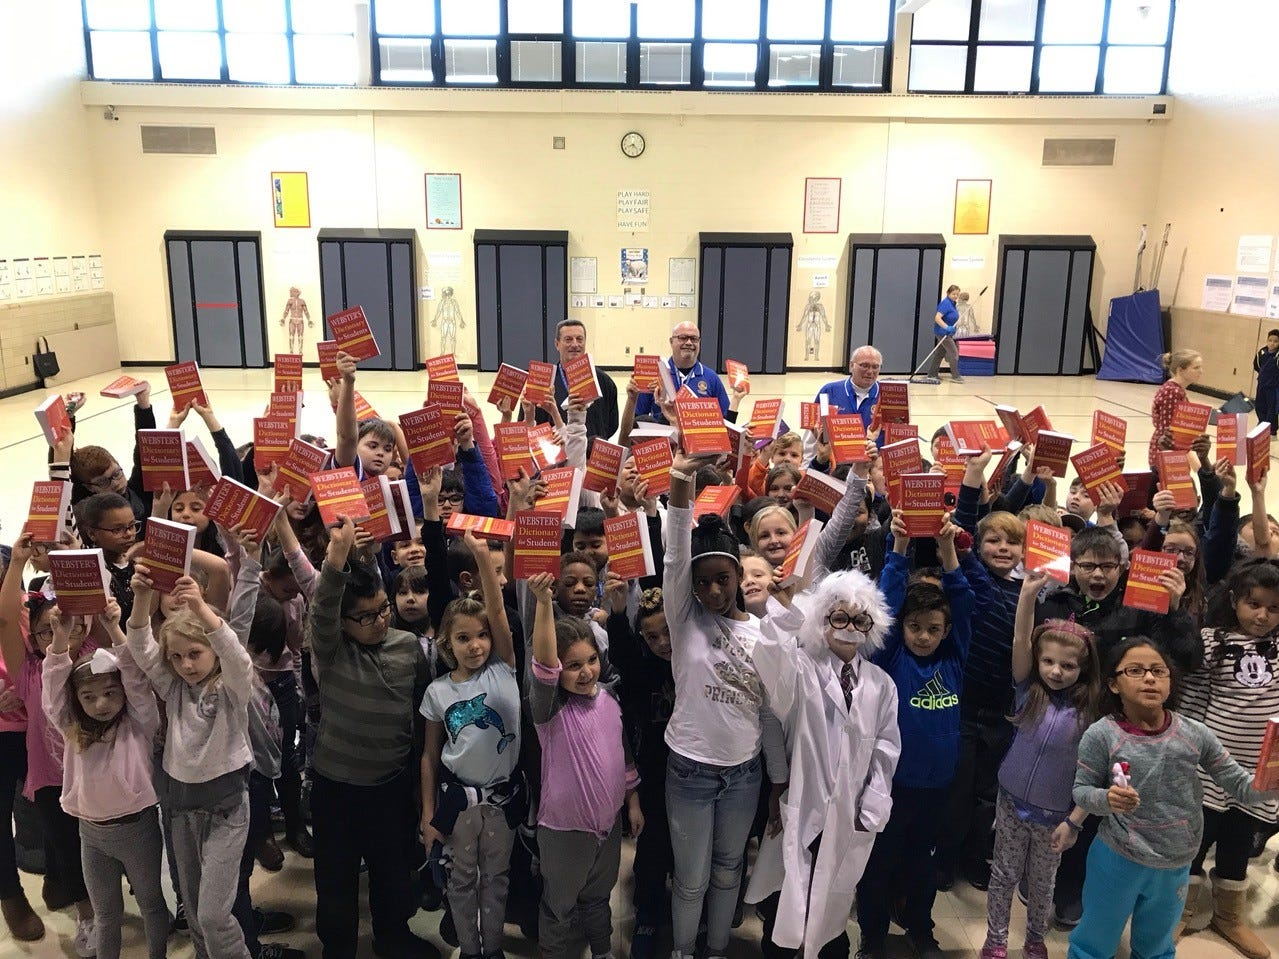 Manville third-graders learn that caring includes community support from service organizations.  The Rotary Club of Hillsborough members (back row) handed out free dictionaries to all third-graders.